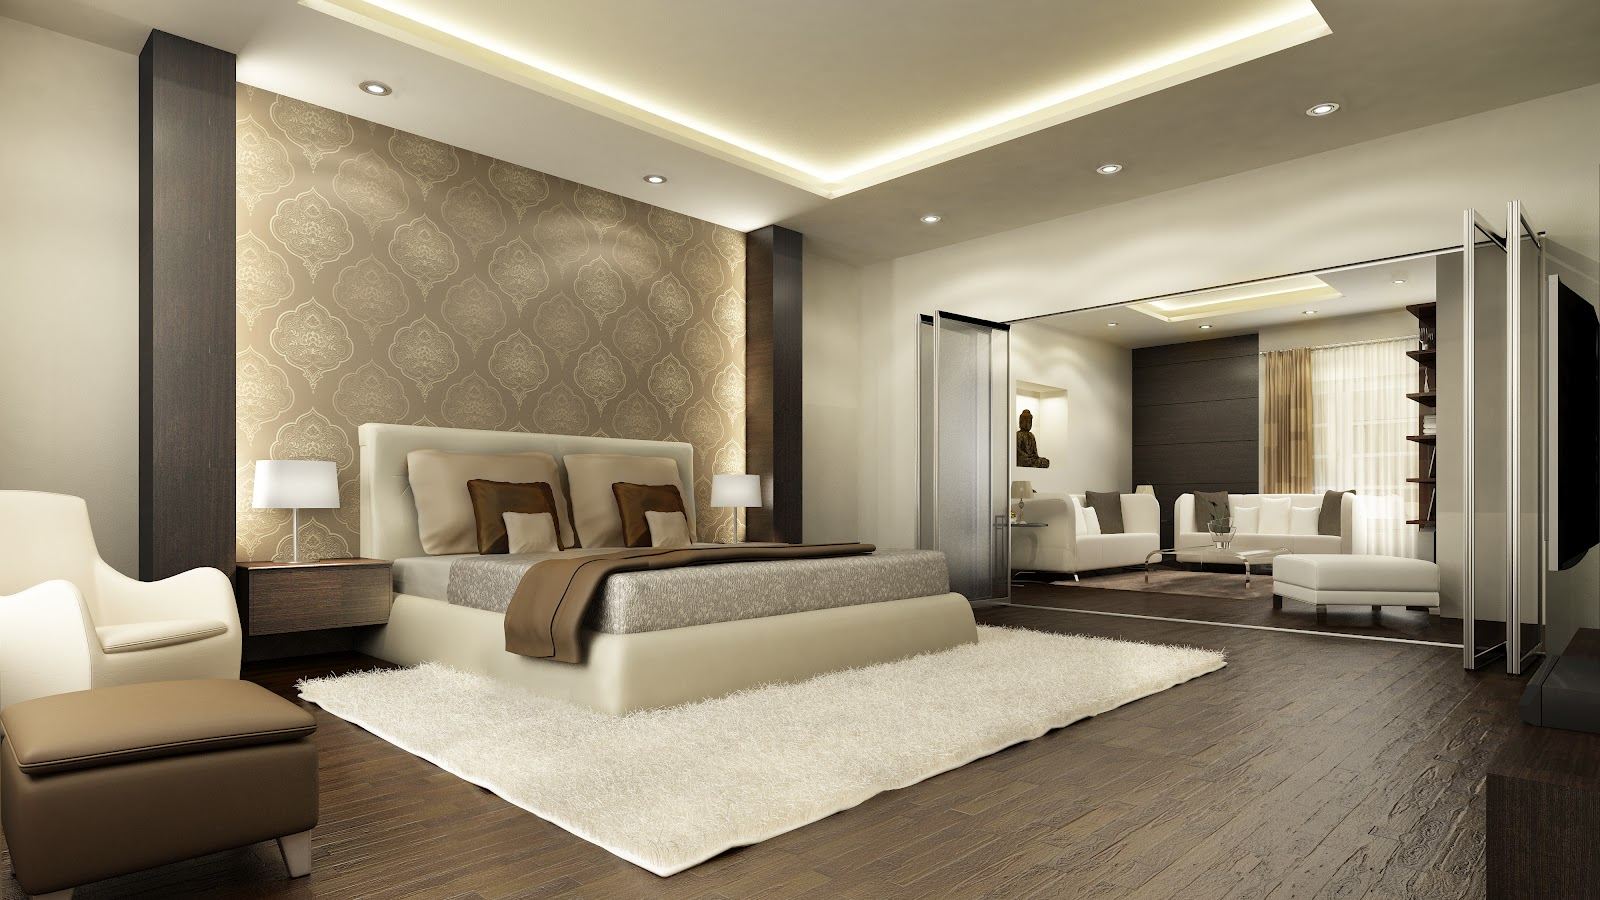 10 most popular master bedroom designs for 2014 qnud for One bedroom design